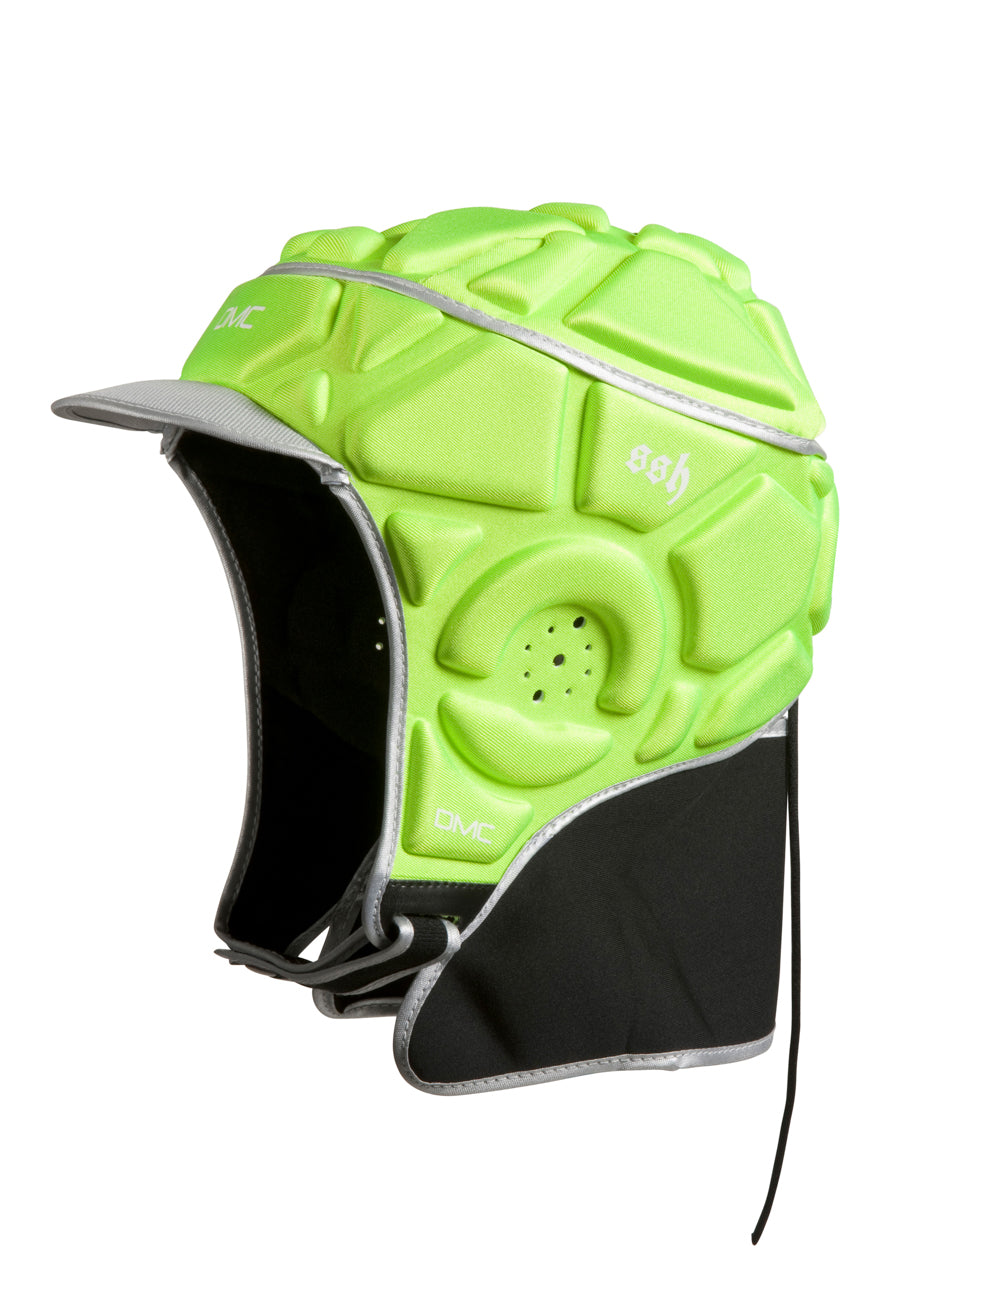 Soft Surf Helmet - Fluoro Green